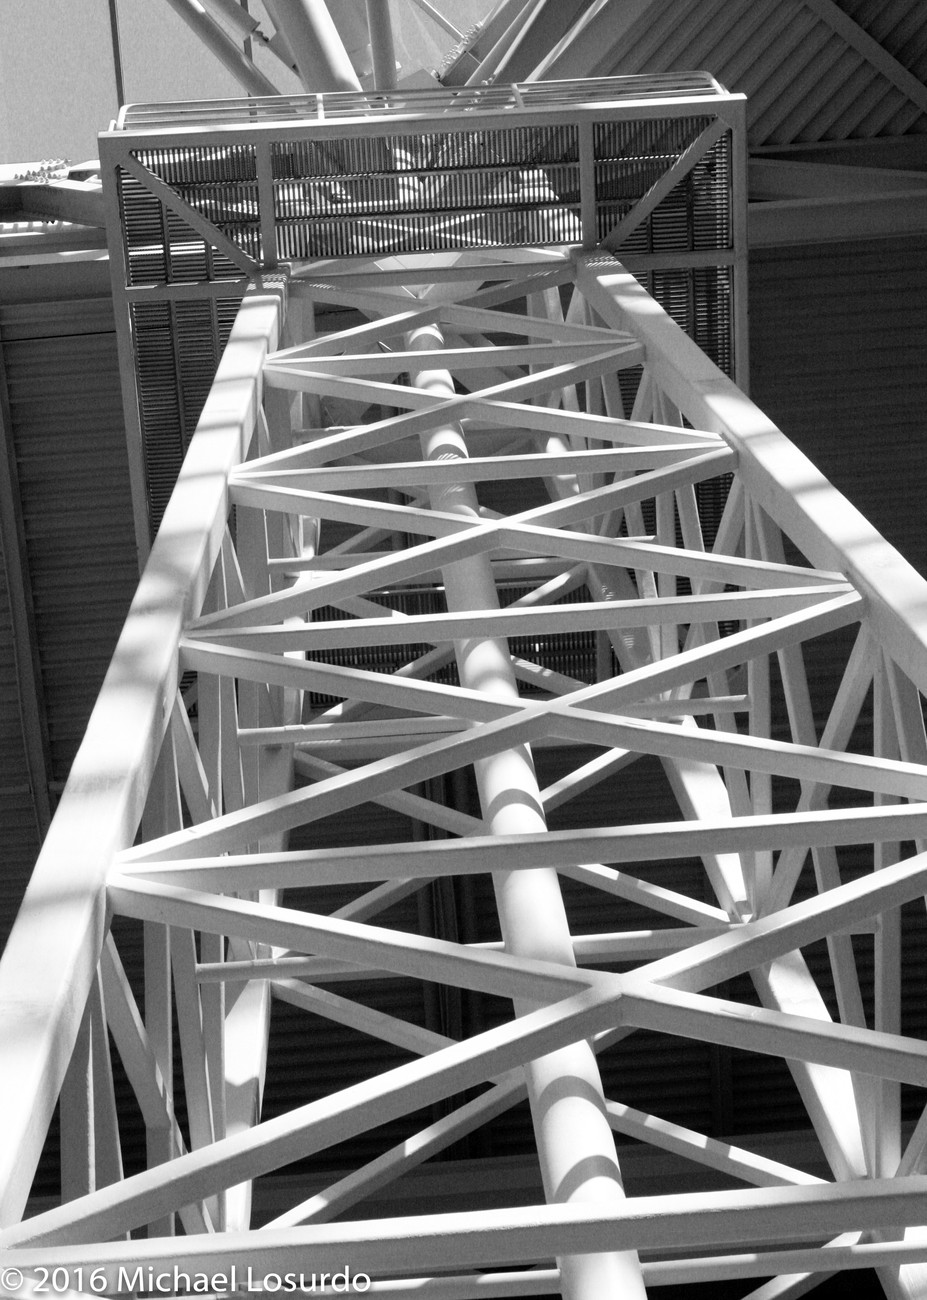 Support structure Gaylord Texan Hotel